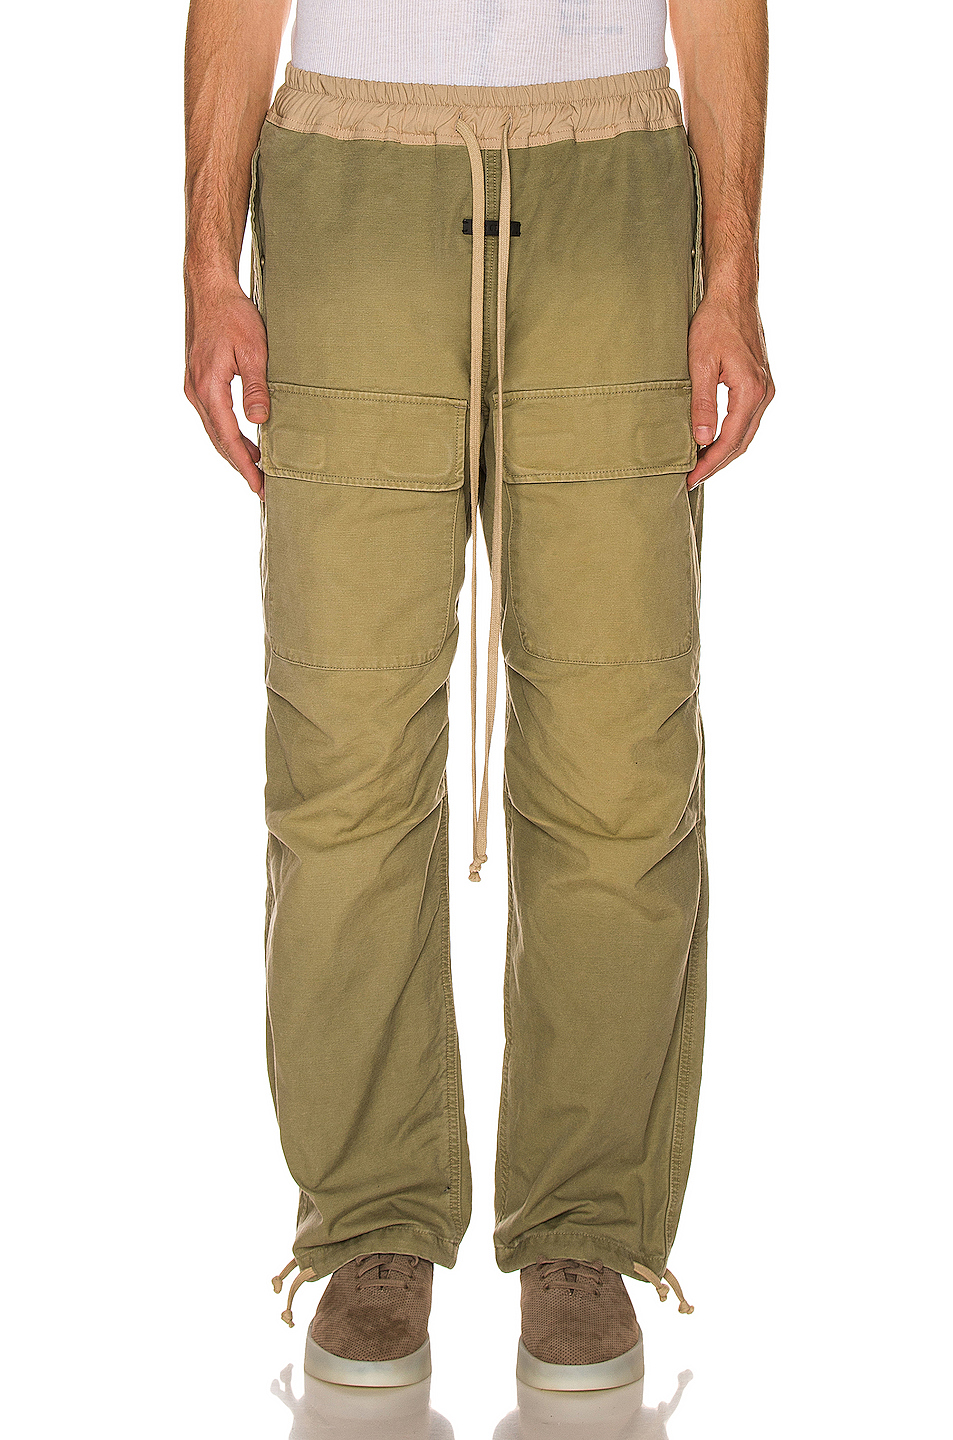 Fear of God Military Cargo Pant